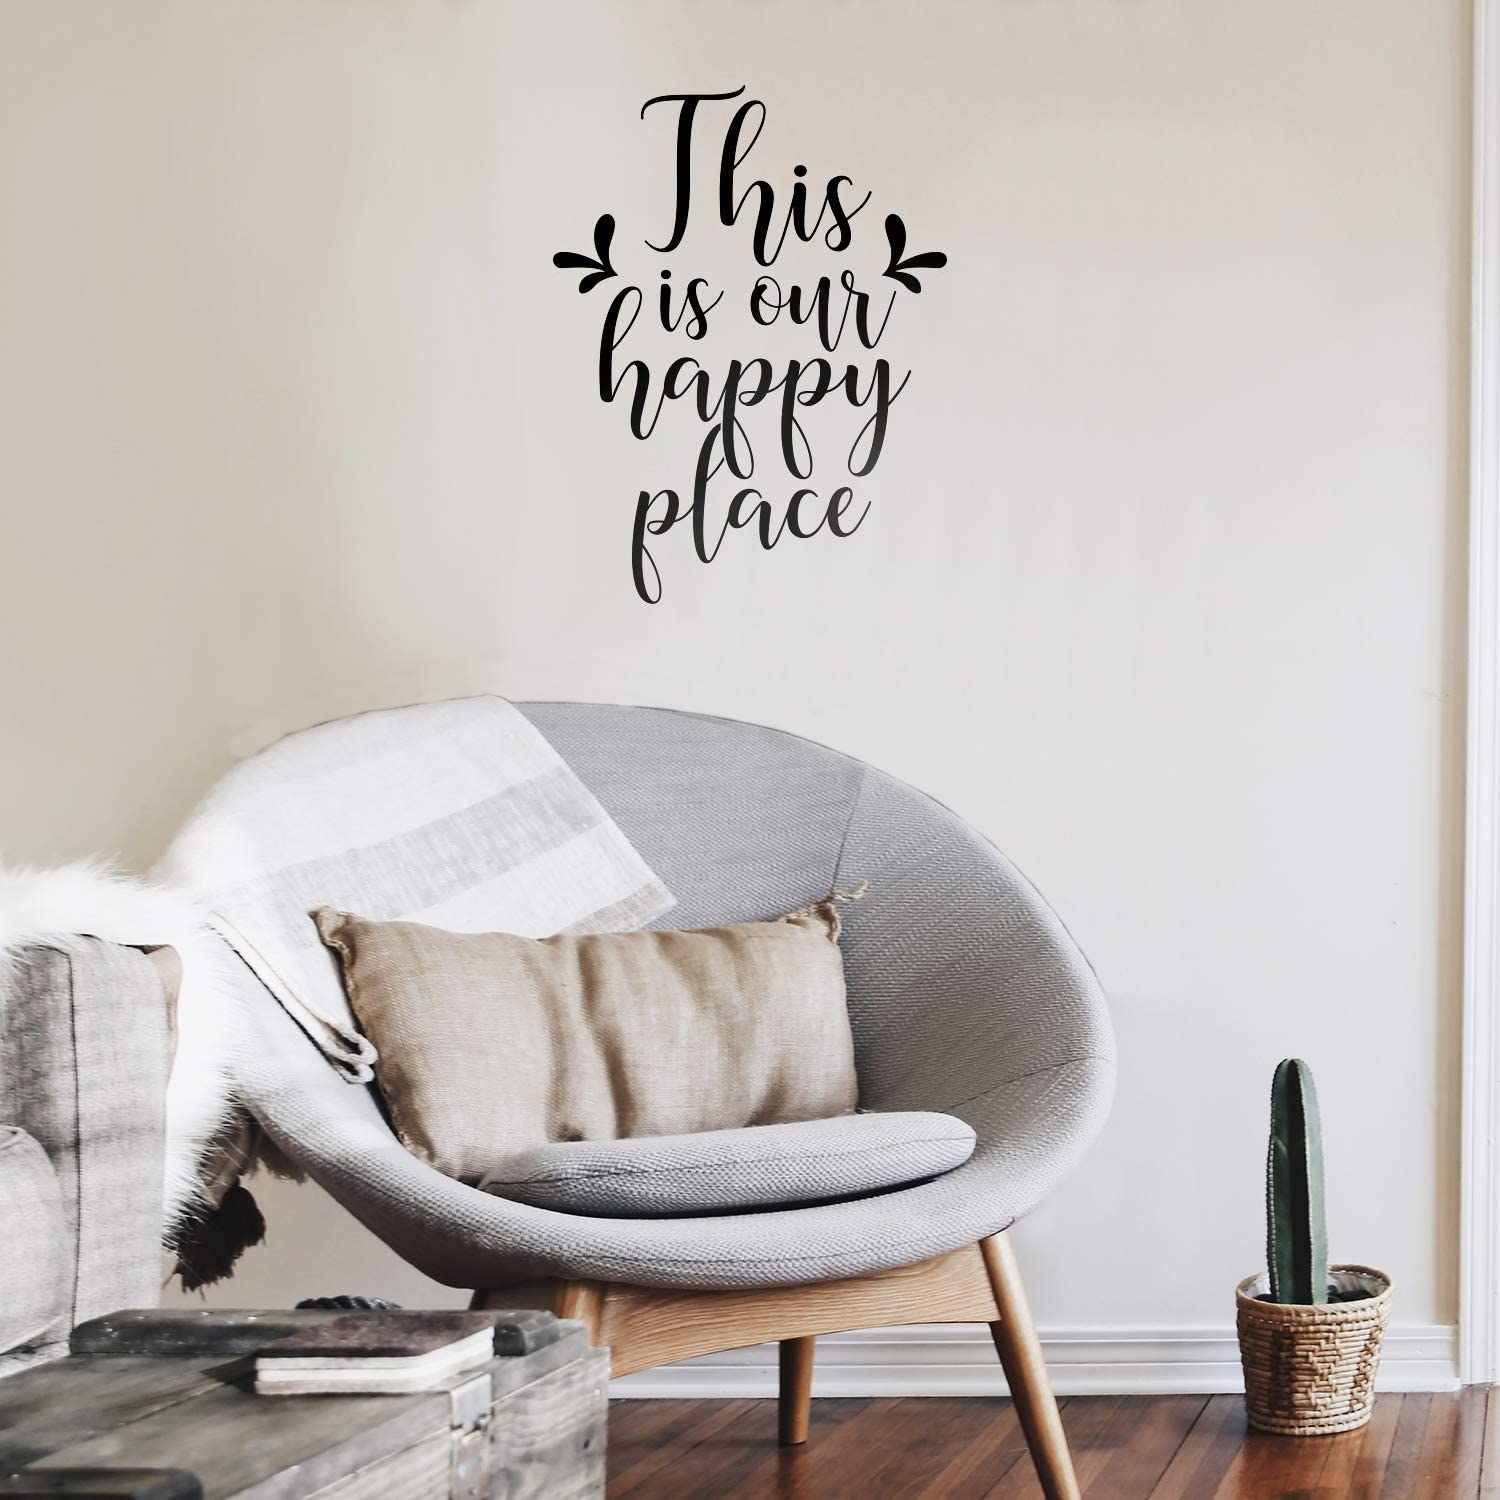 """Vinyl Wall Art Decal - This is Our Happy Place - 27"""" x 19"""" - Modern Cursive Love Quote for Couples Home Apartment Bedroom Living Room Dining Room Household Indoor Outdoor Decor"""